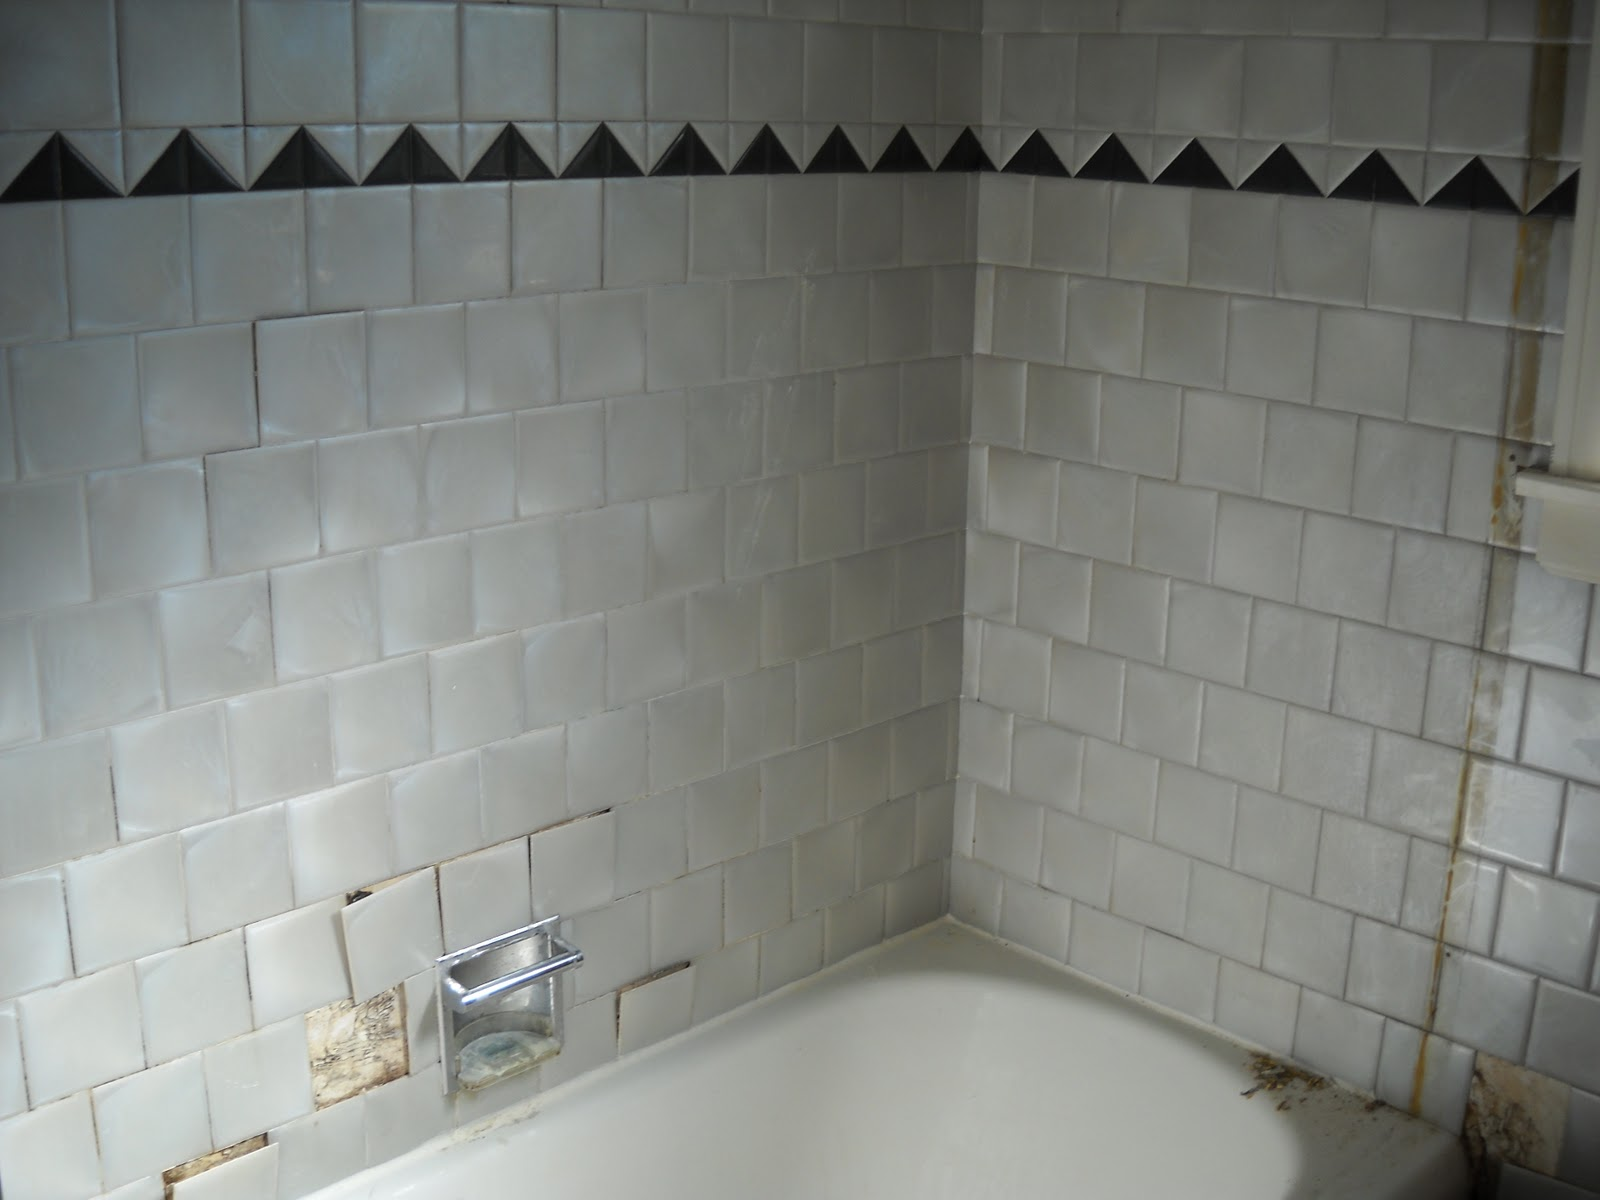 home depot bathroom tiles ideas   agemslife. Bathroom Tiles Home Depot Ideas   Agemslife com